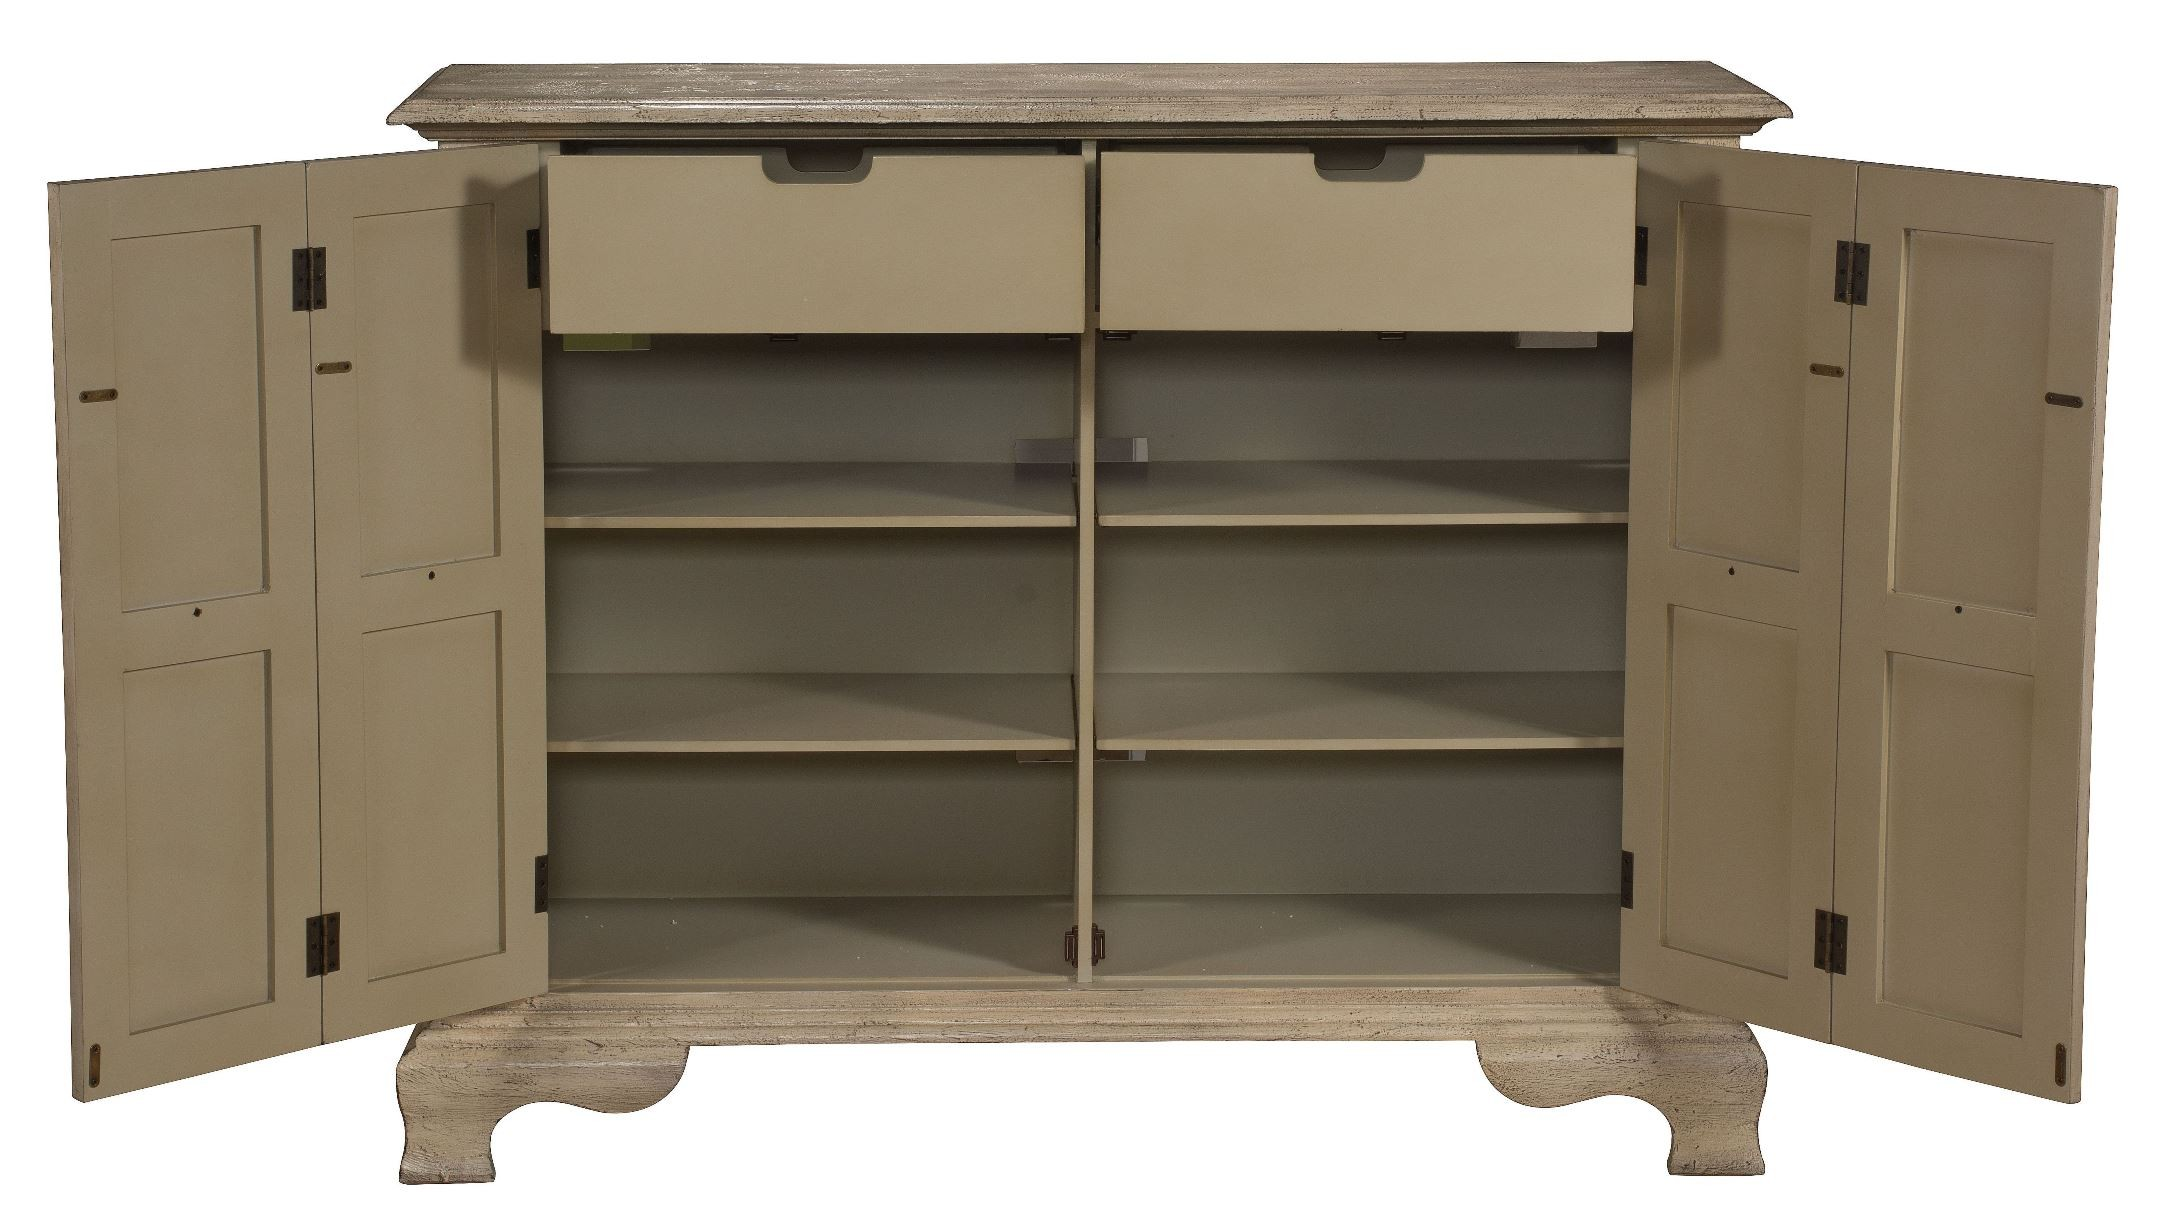 1230 #7A6951 Kendall Texture Ivory Two Folding Door Cabinet From Coast To Coast  wallpaper Accordion Cabinet Doors 29852166